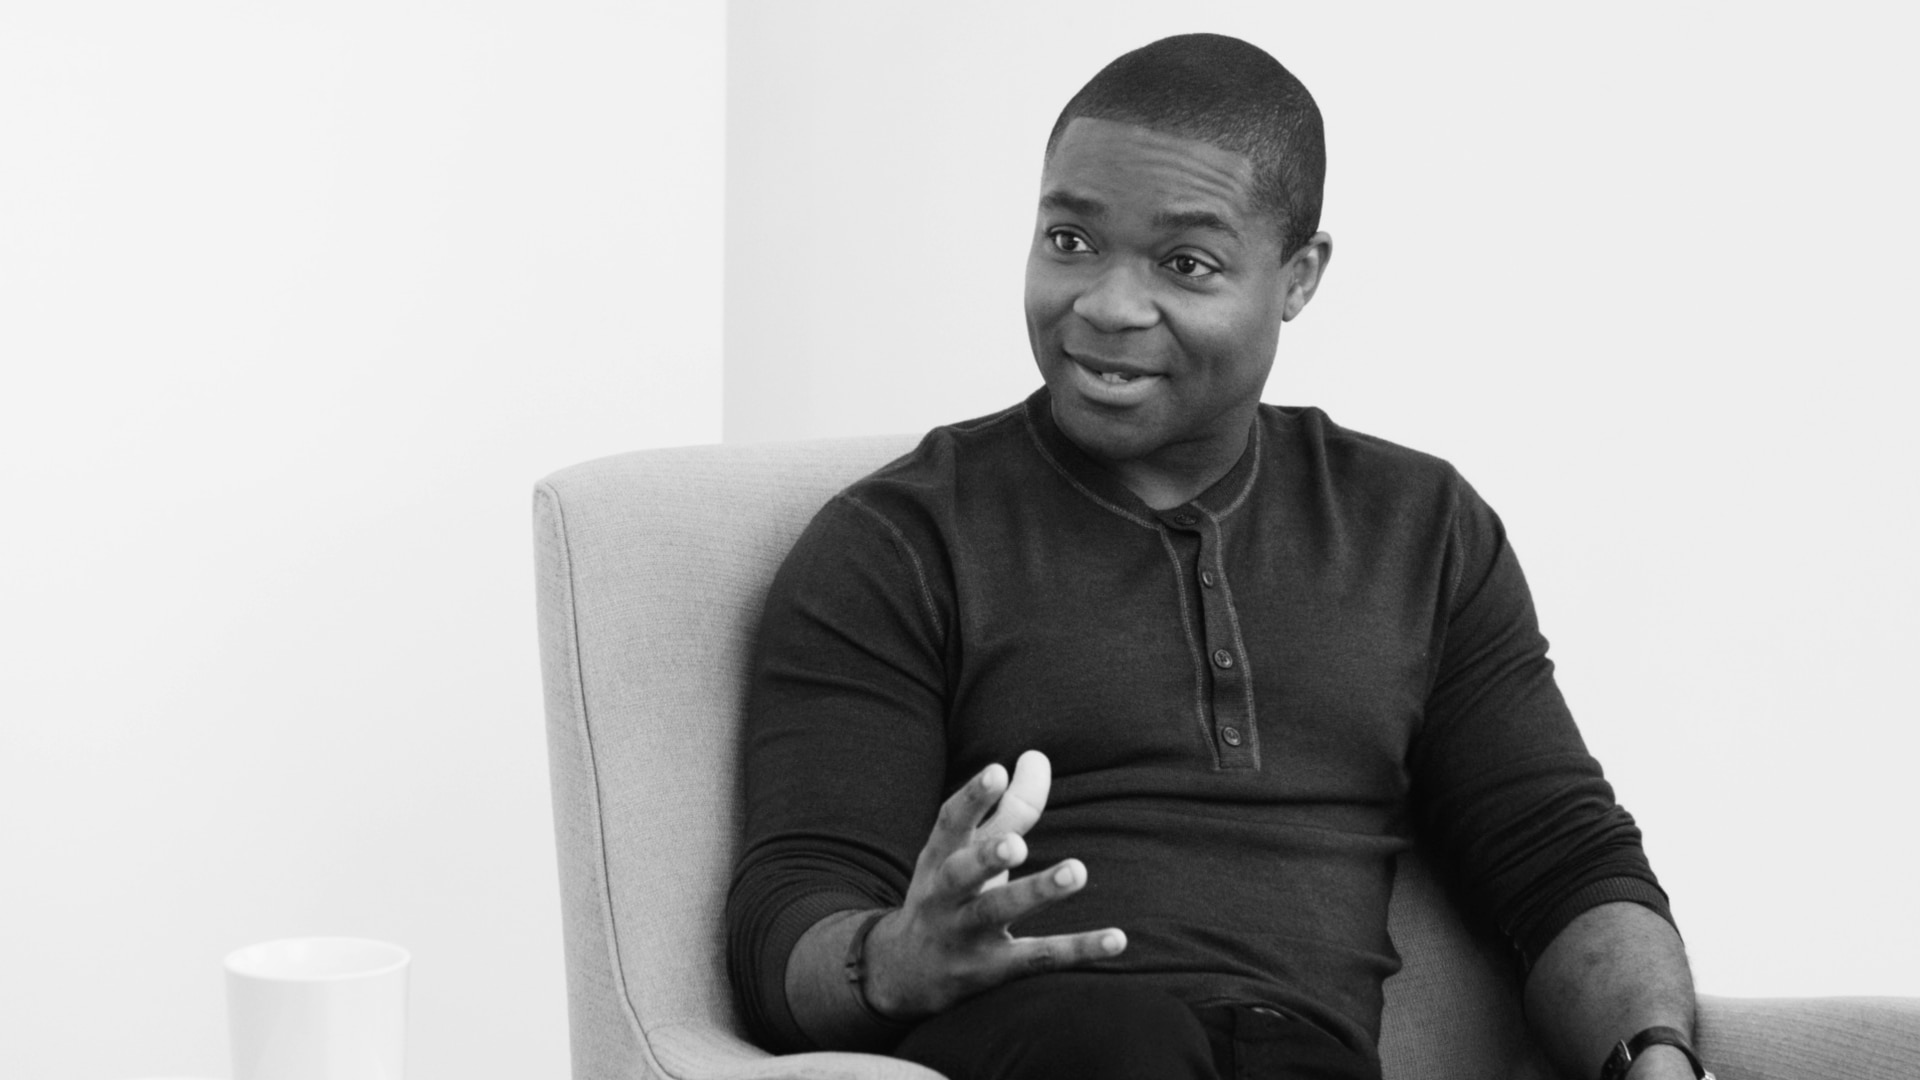 David Oyelowo: Off Camera With Sam Jones